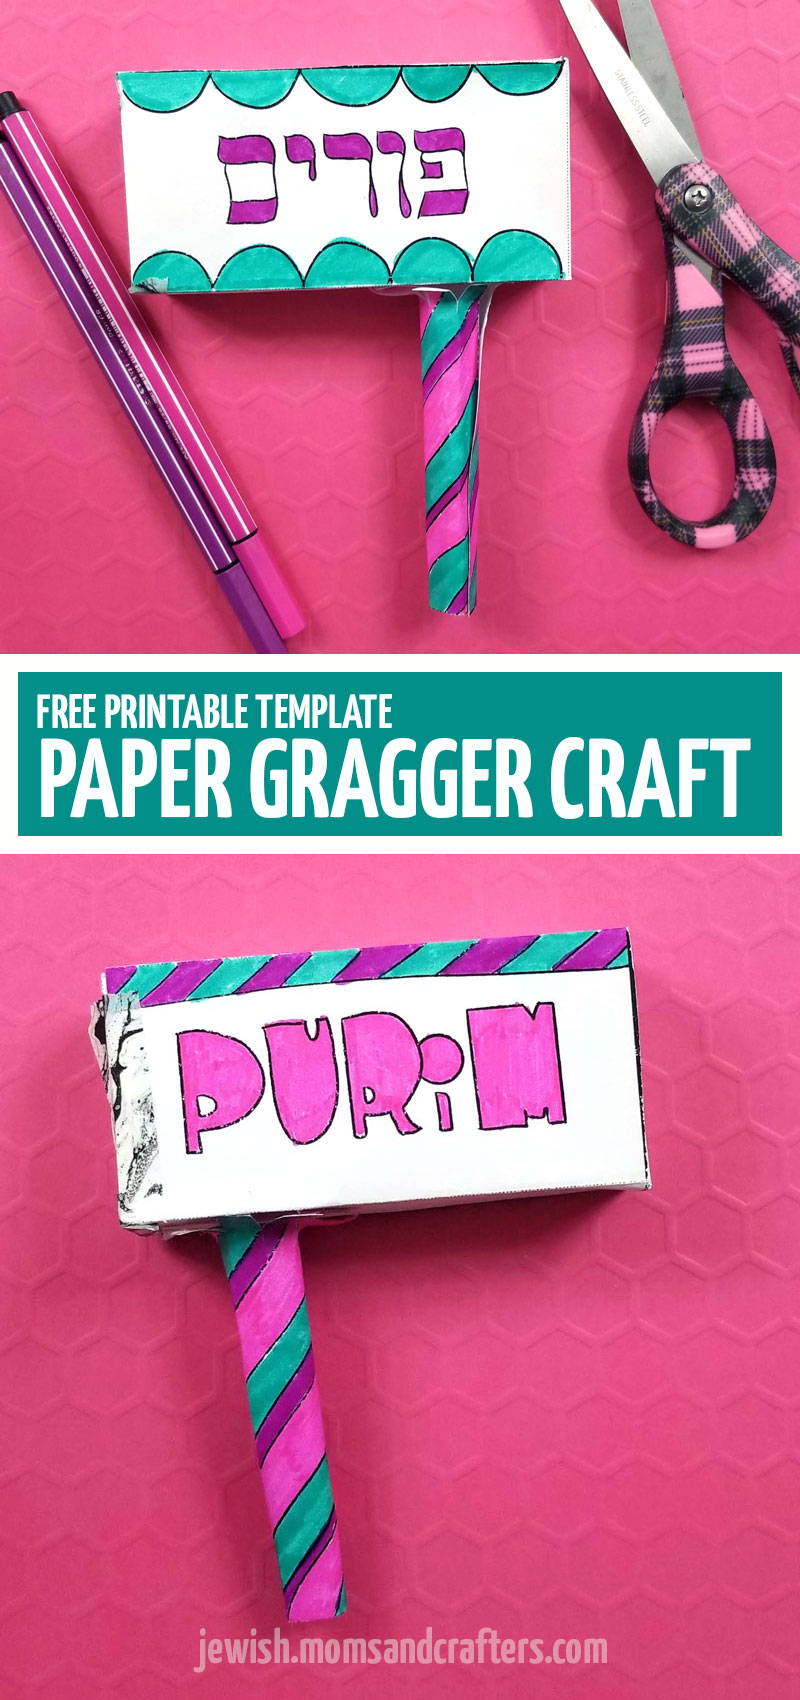 Click to download this free printable paper gragger craft for Purim! Make your own purim Grogger using card stock and a few other easy simple material with an easy DIY idea for kids teens or grown-ups.